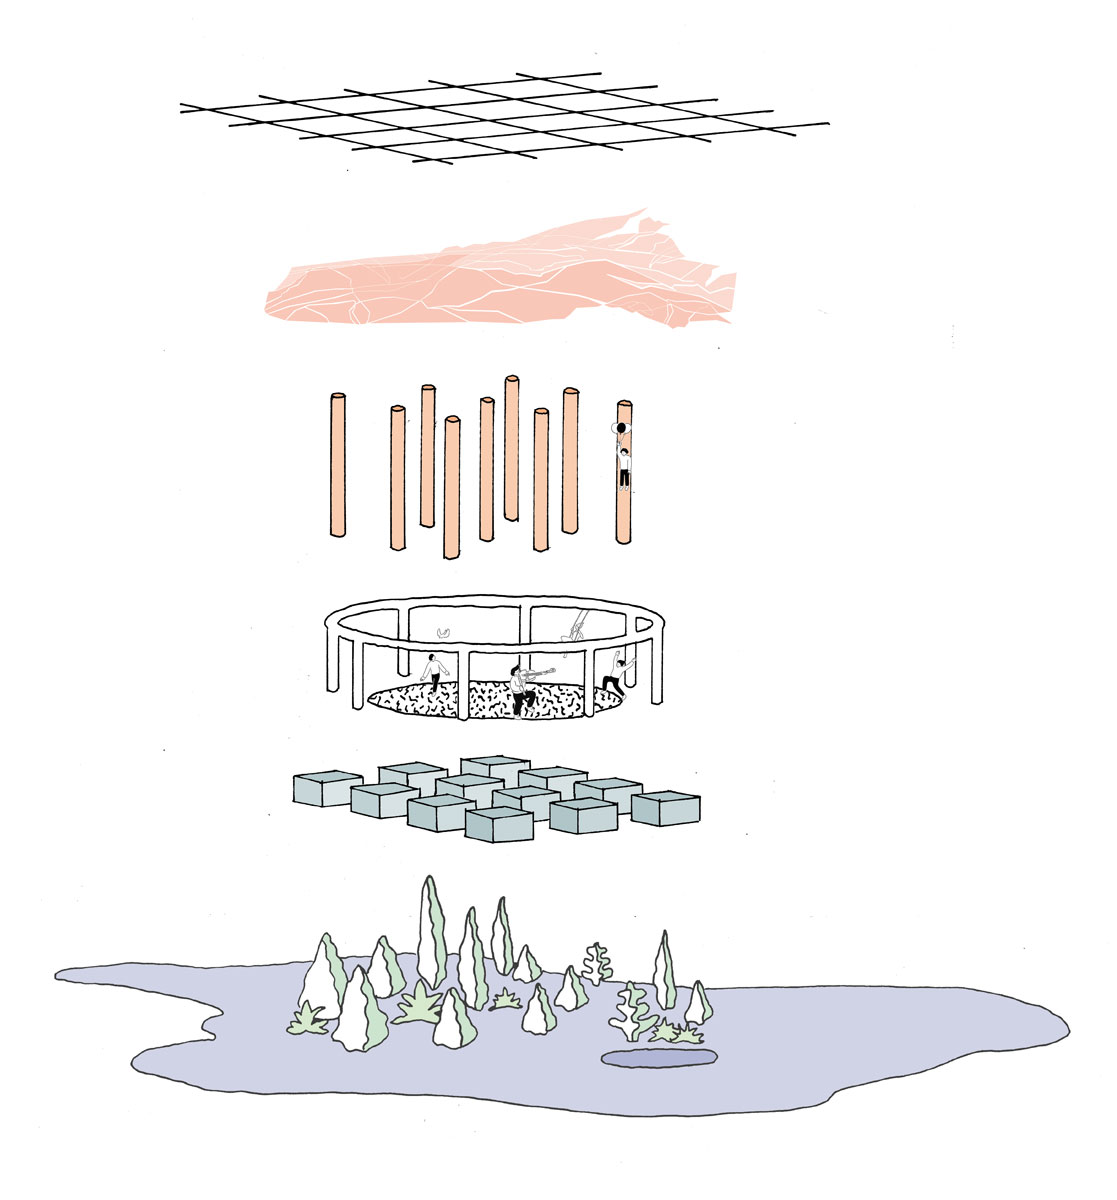 Exploded diagram of the components creating a community on the new lands of the Salt River by student Cecile Kim